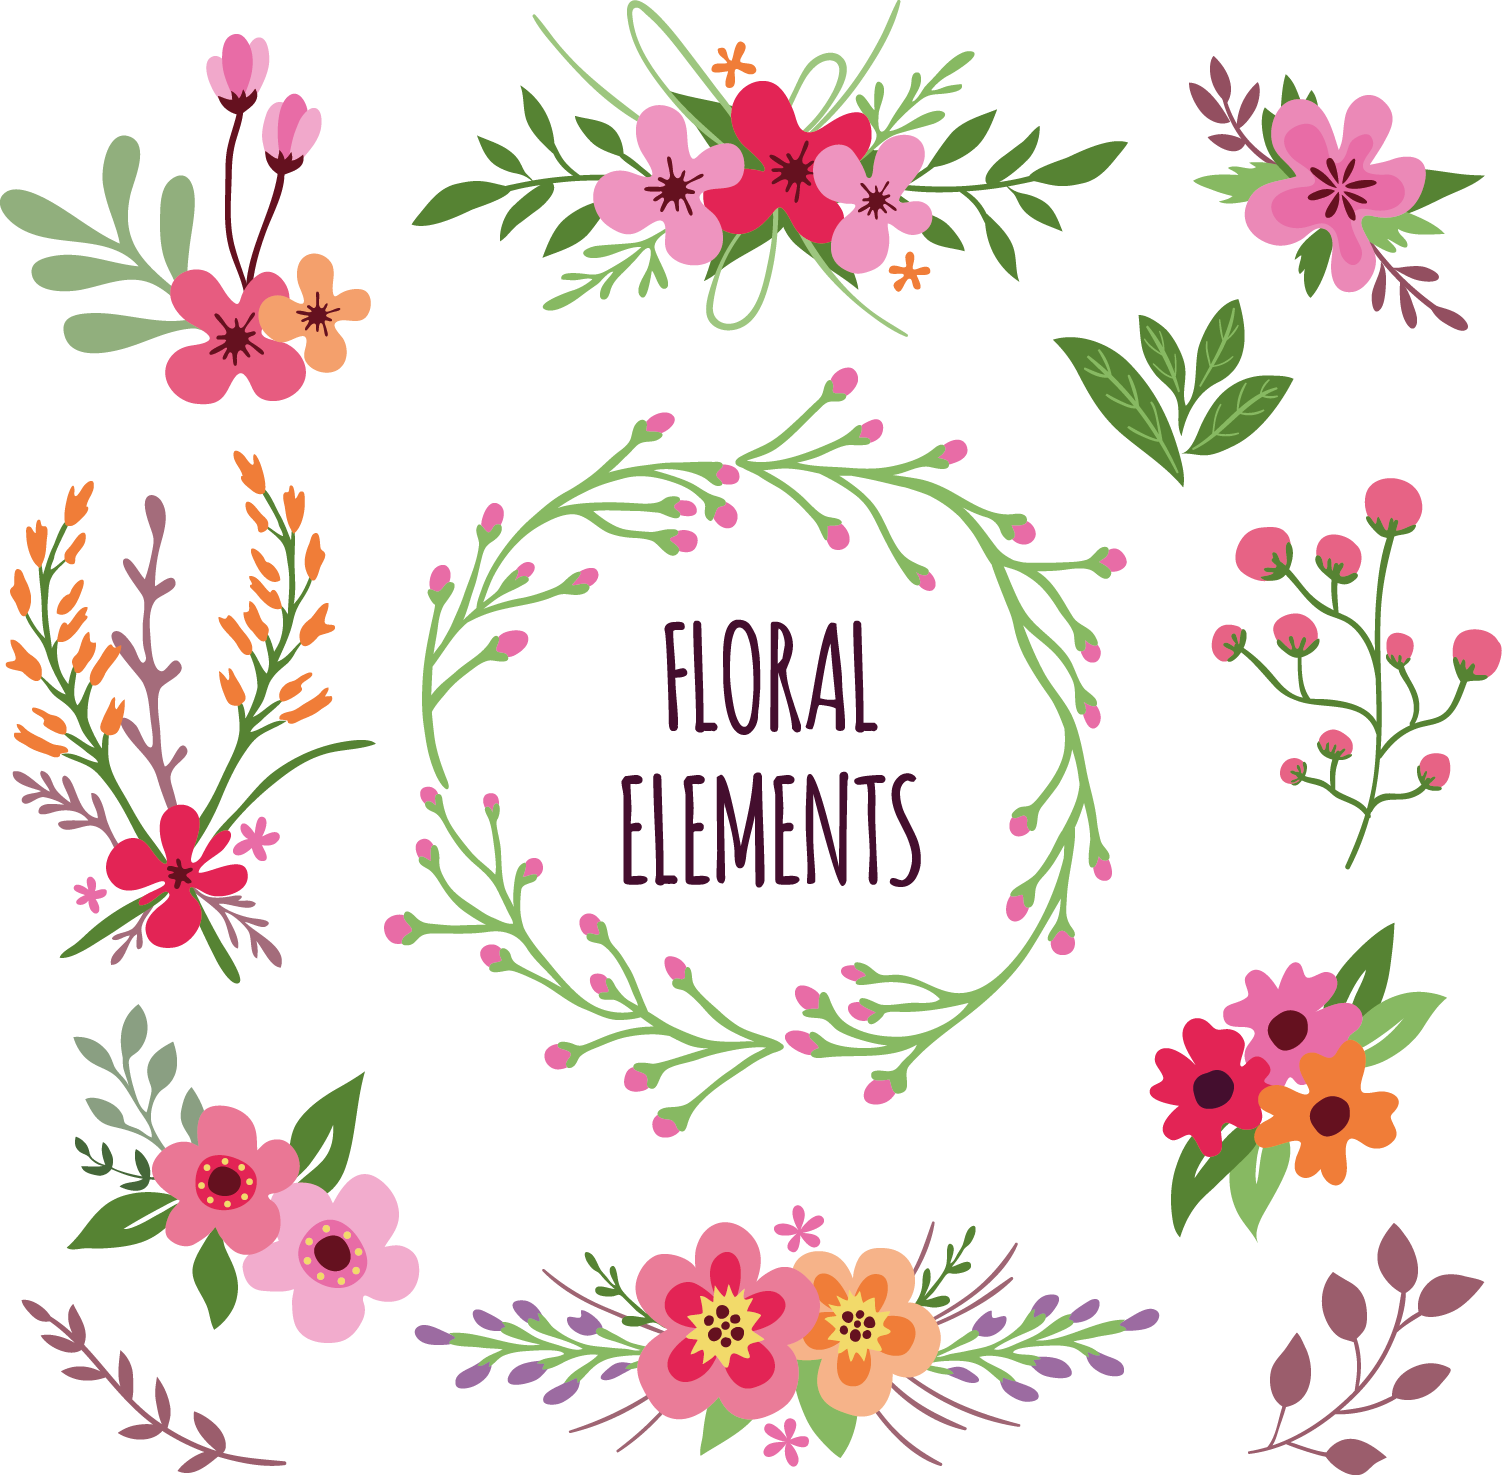 Free flower download banner royalty free Flower Download Clip art - Floral elements Free Download 1502*1475 ... banner royalty free